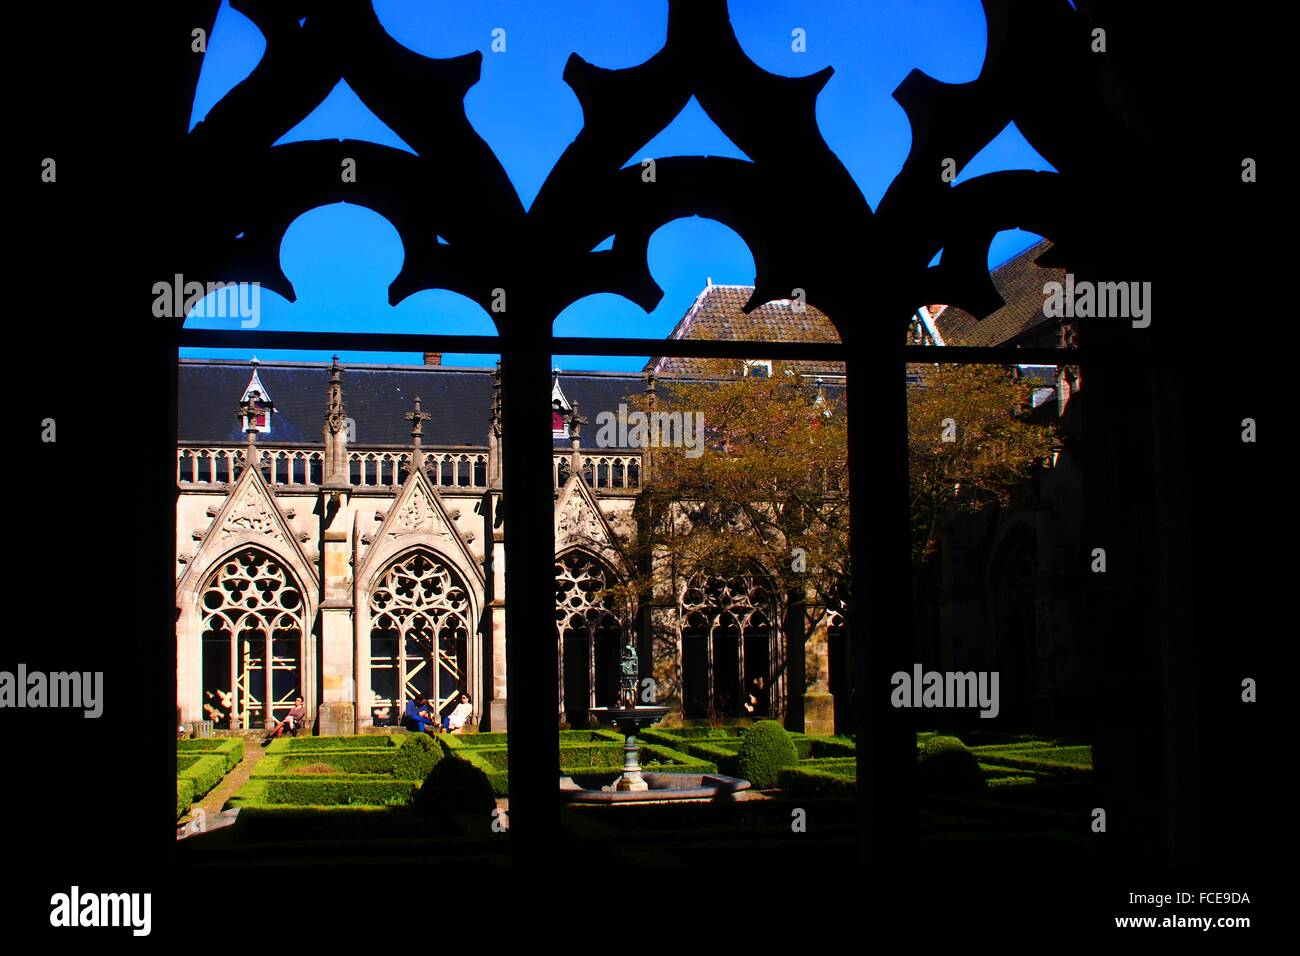 Holland-Utrecht- 'Pandhof van de Dom' (closter of the cathedrale).Utrecht is the capital and most populous - Stock Image